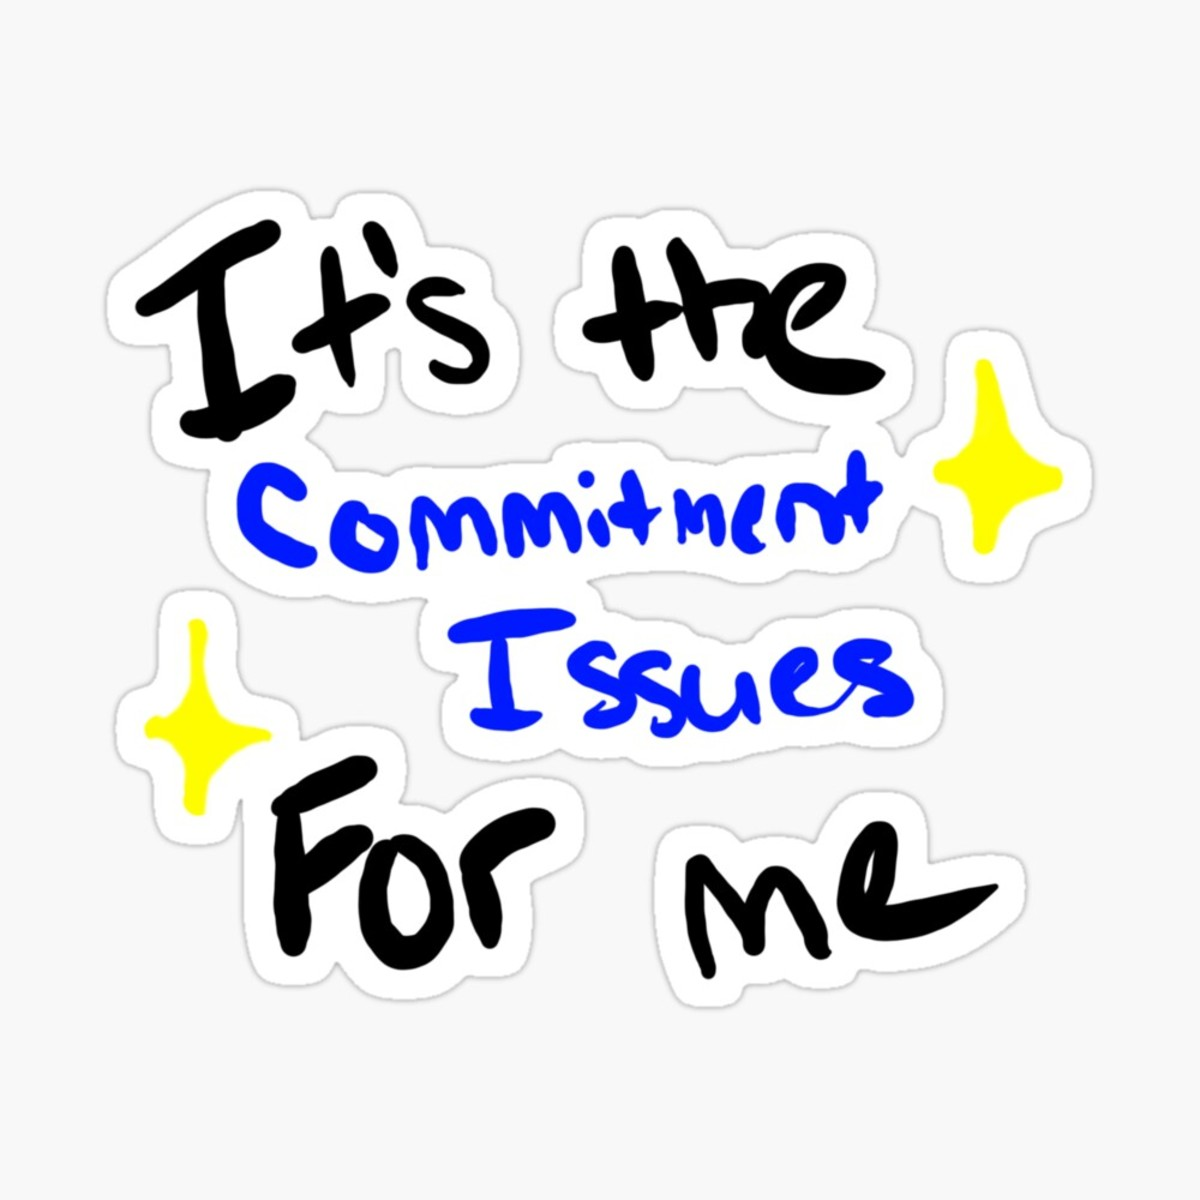 Why I Have Trouble With Commitment